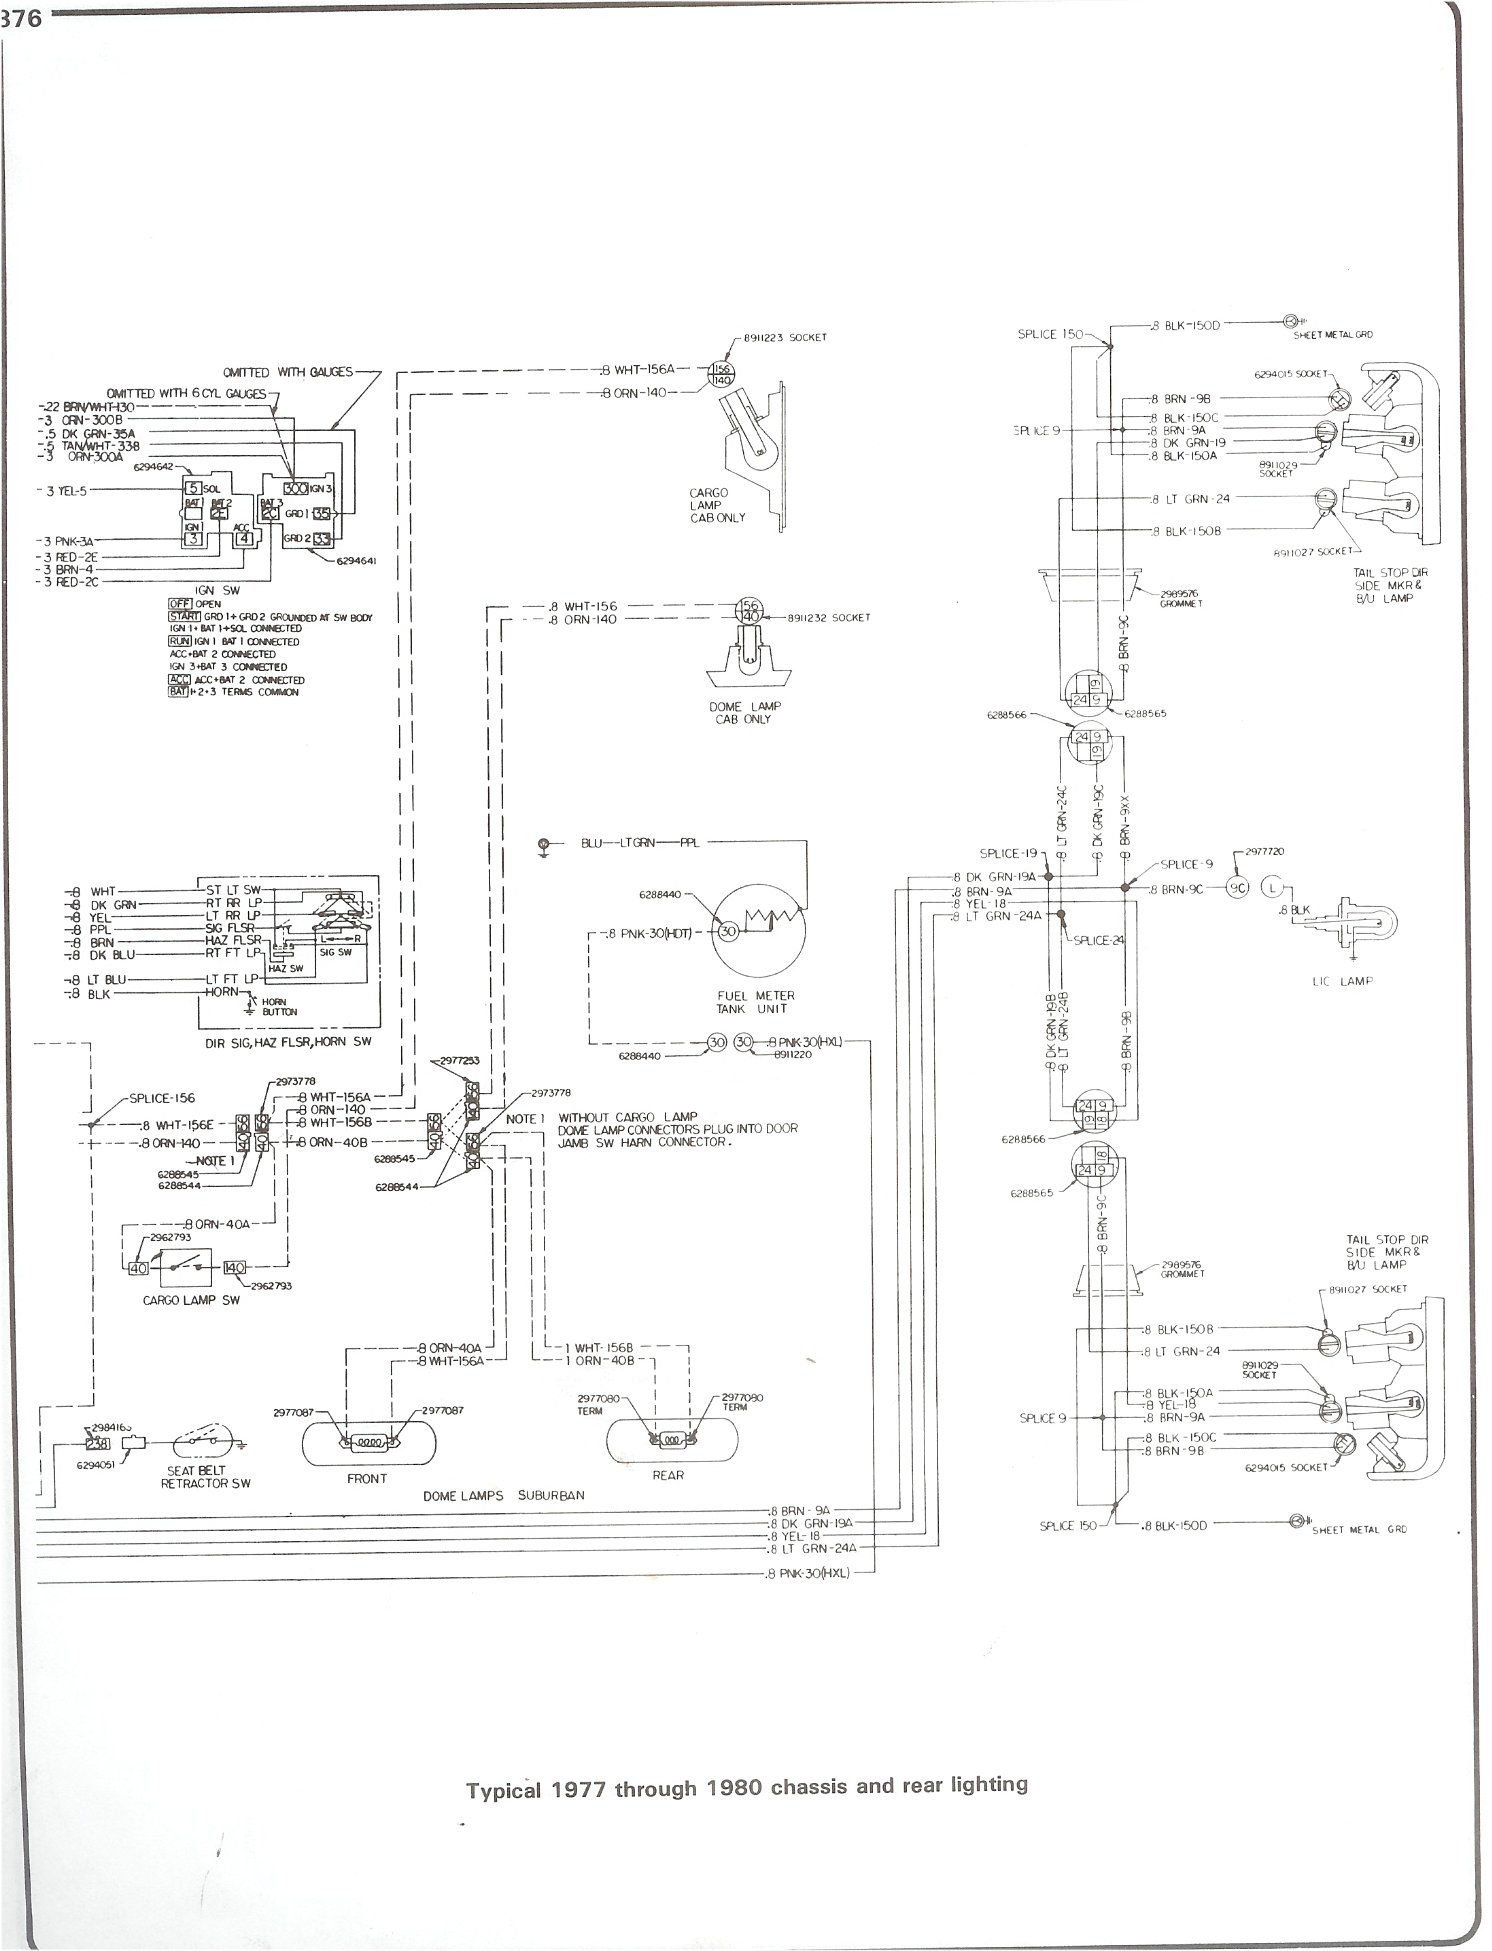 77 80_chass_rr_light under hood wiring schematic for 1978 cheny blazer chevy truck 1978 chevy truck wiring diagram at reclaimingppi.co